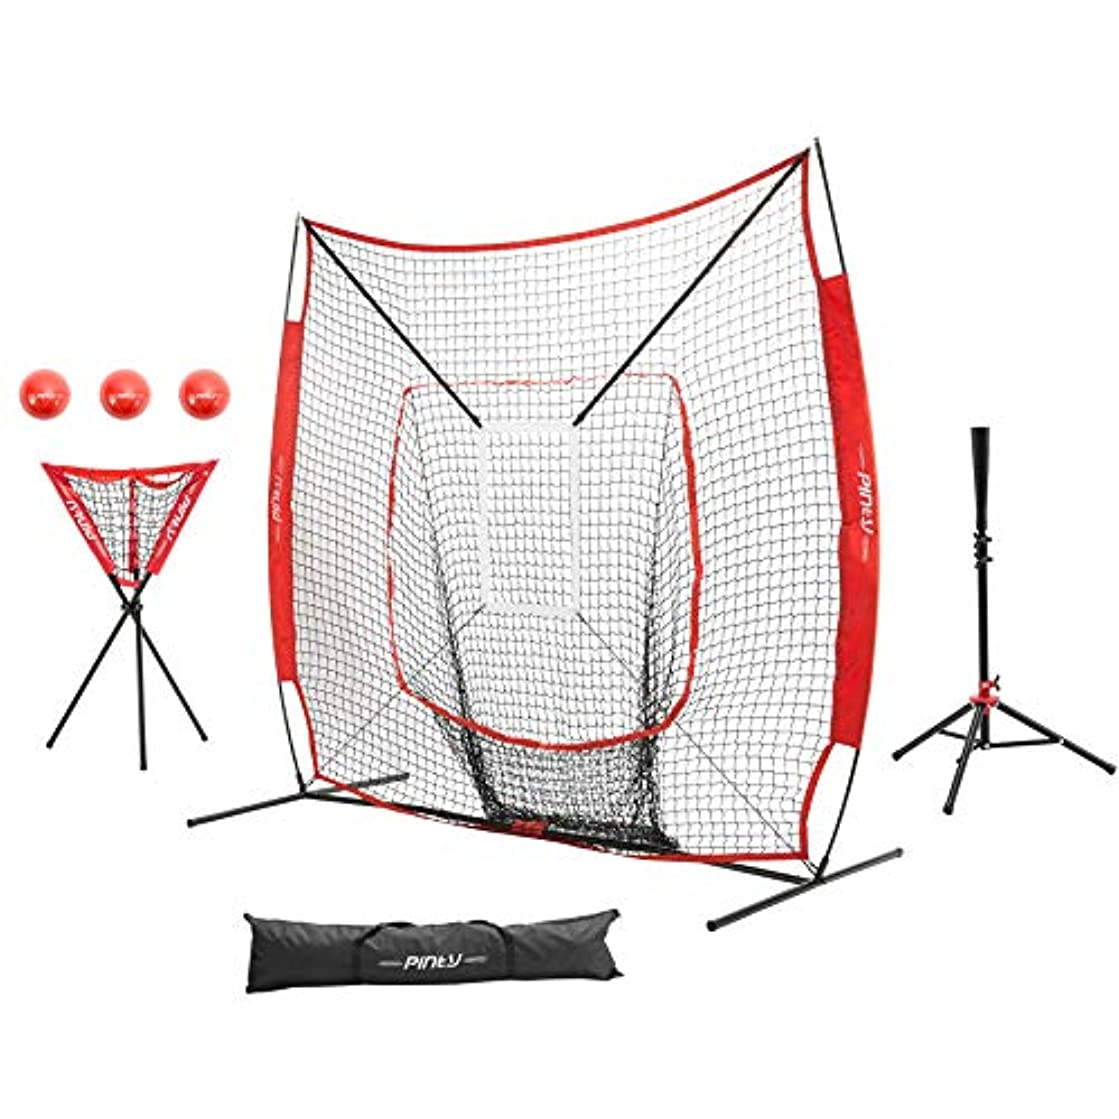 Pinty Baseball and Softball Practice Net 7×7 Hitting Batting Net w/Strick Zone Target + Baseball Softball Batting Tee + Ball Caddy + Weighted Training Balls